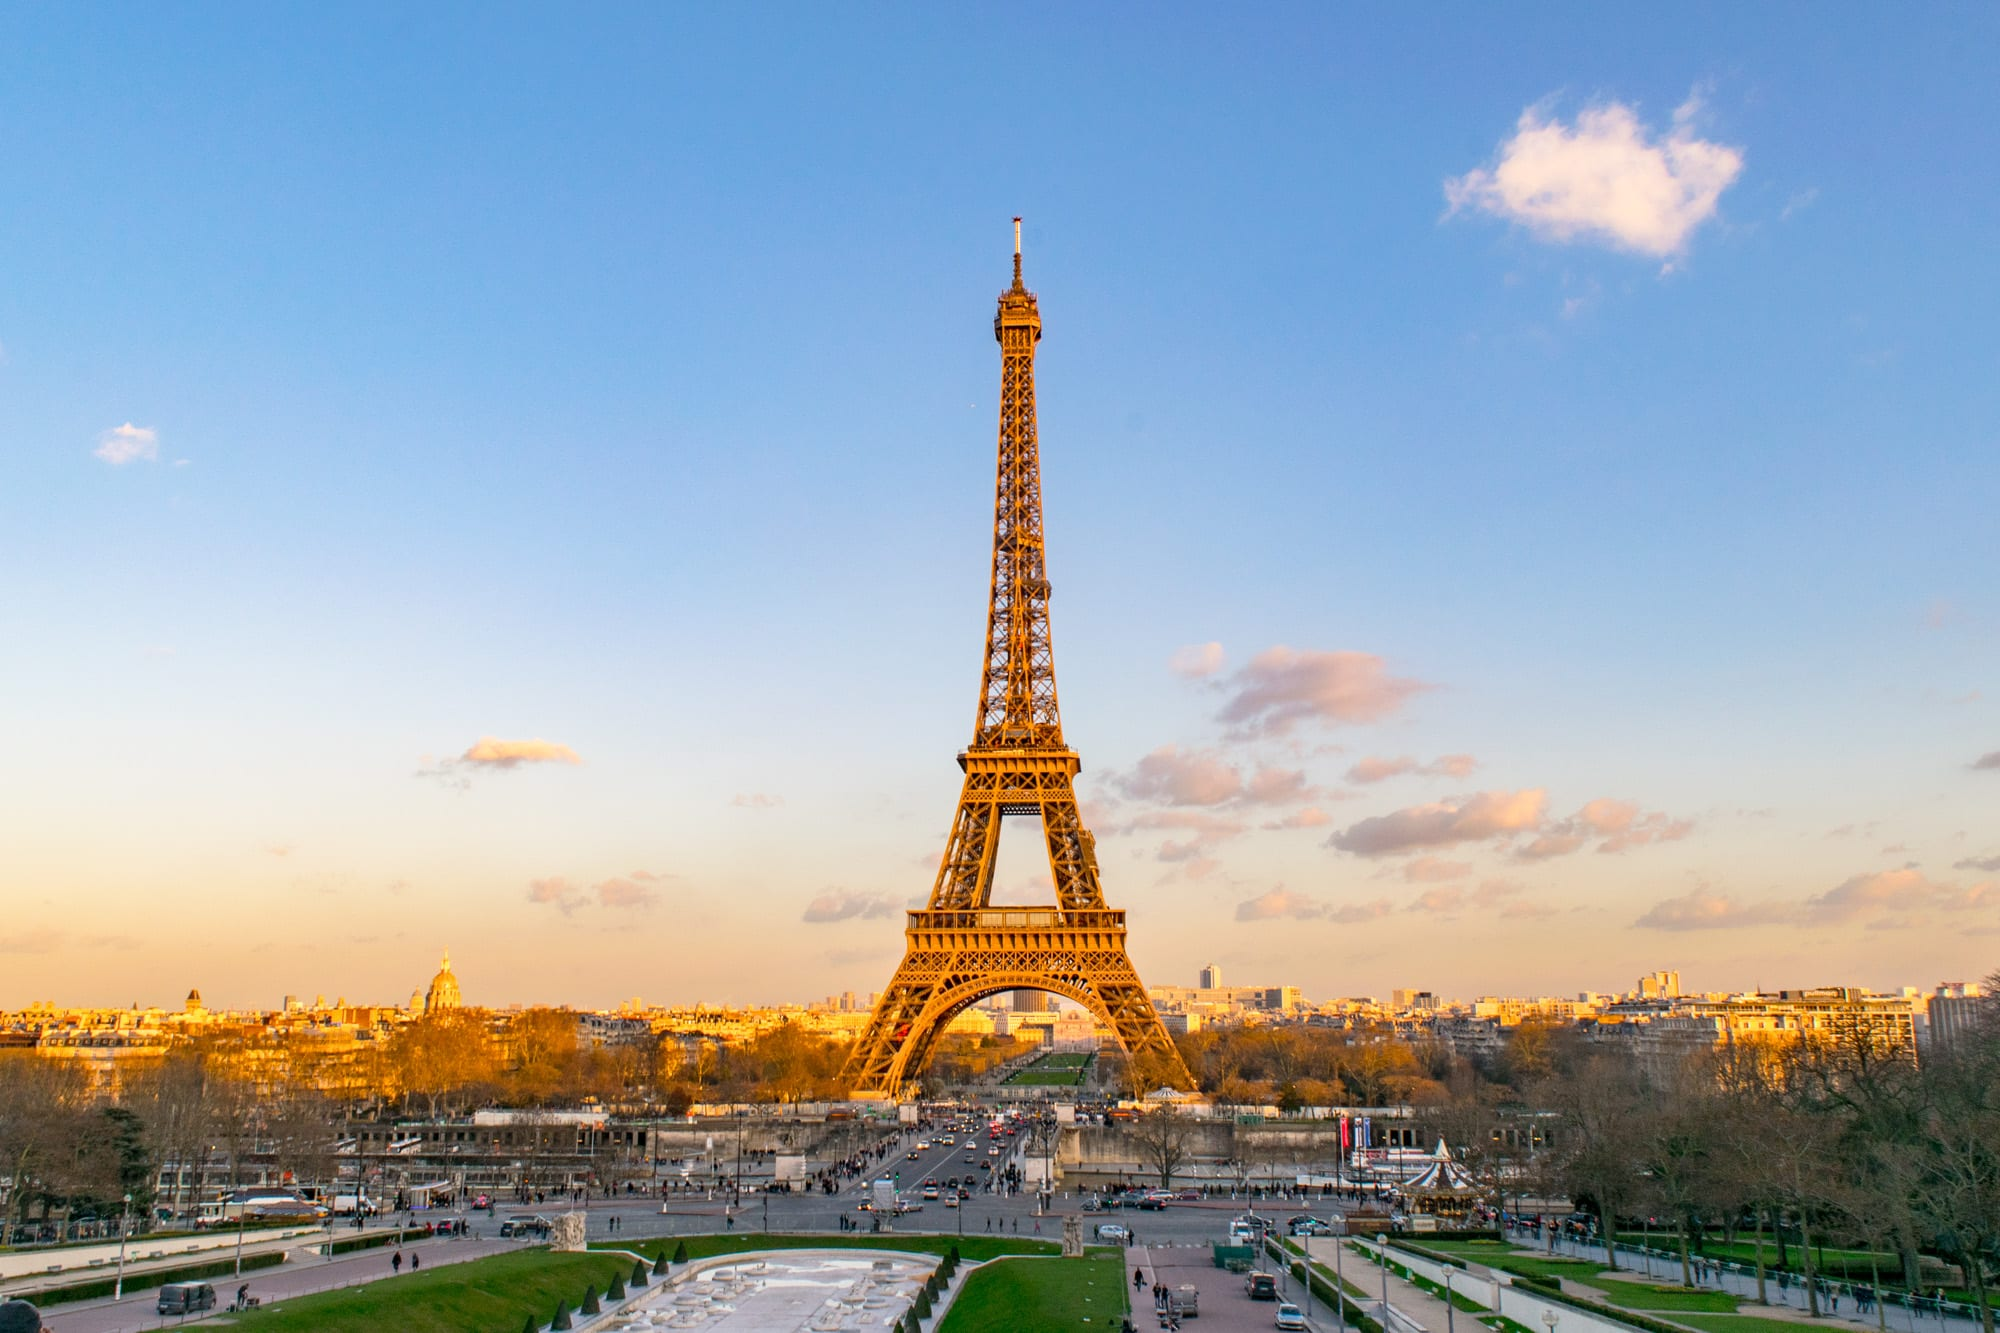 3 Days in Paris Itinerary: Eiffel Tower from Trocadero Gardens